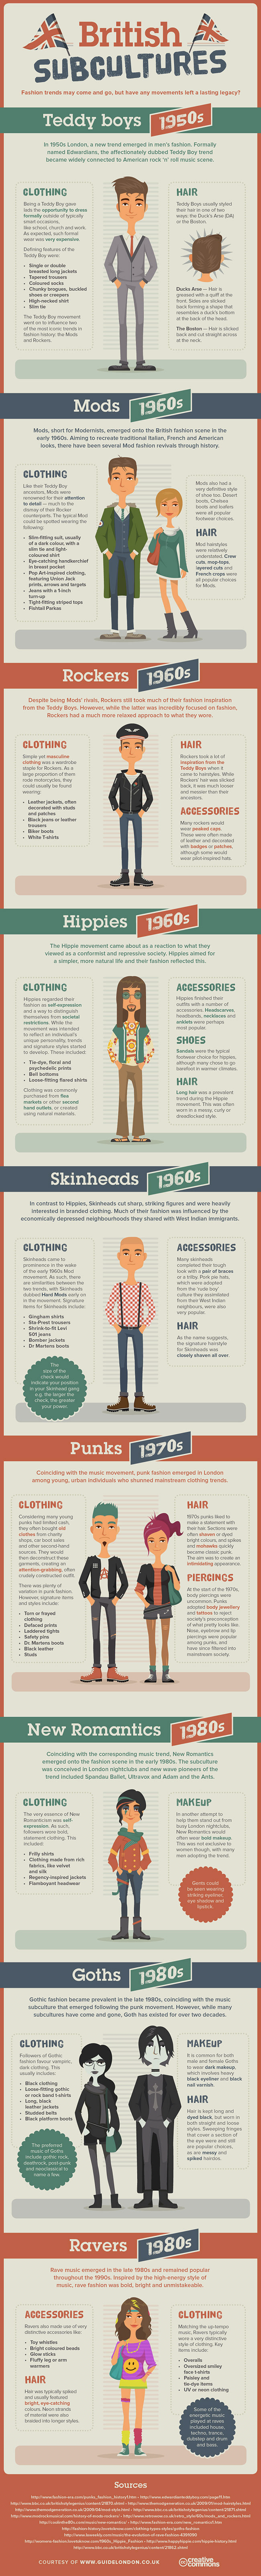 Leading British clothing brand Guide London's infographic which takes a look at some of Britain's most famous and influential fashion movements.